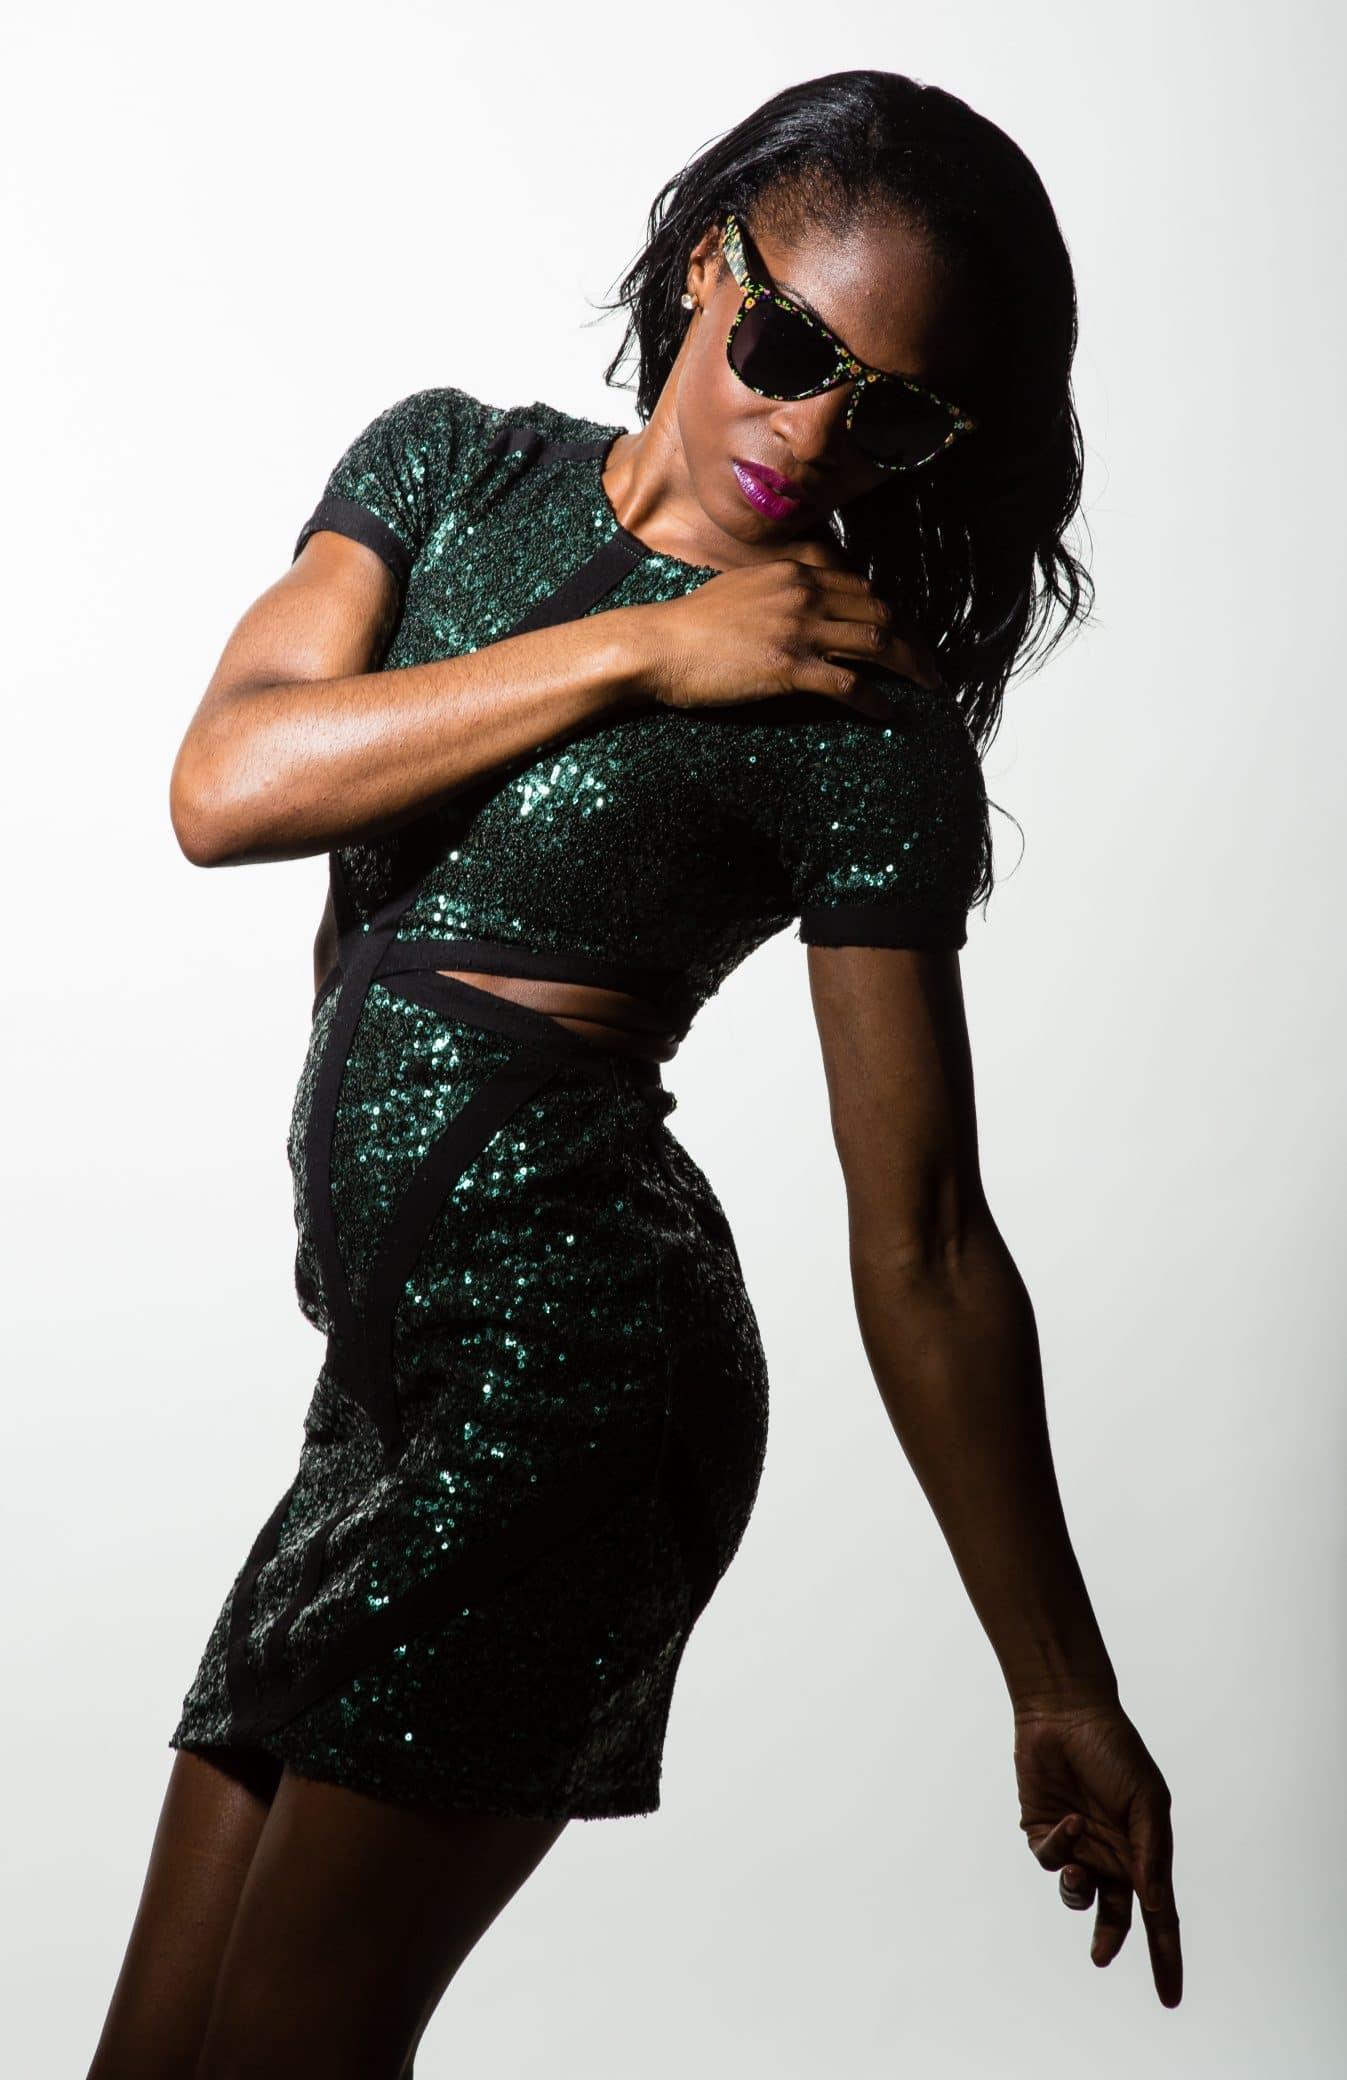 Beautiful black woman wearing a tight sparkling green dress modelling for a studio photoshoot with one arm down pointing to the floor